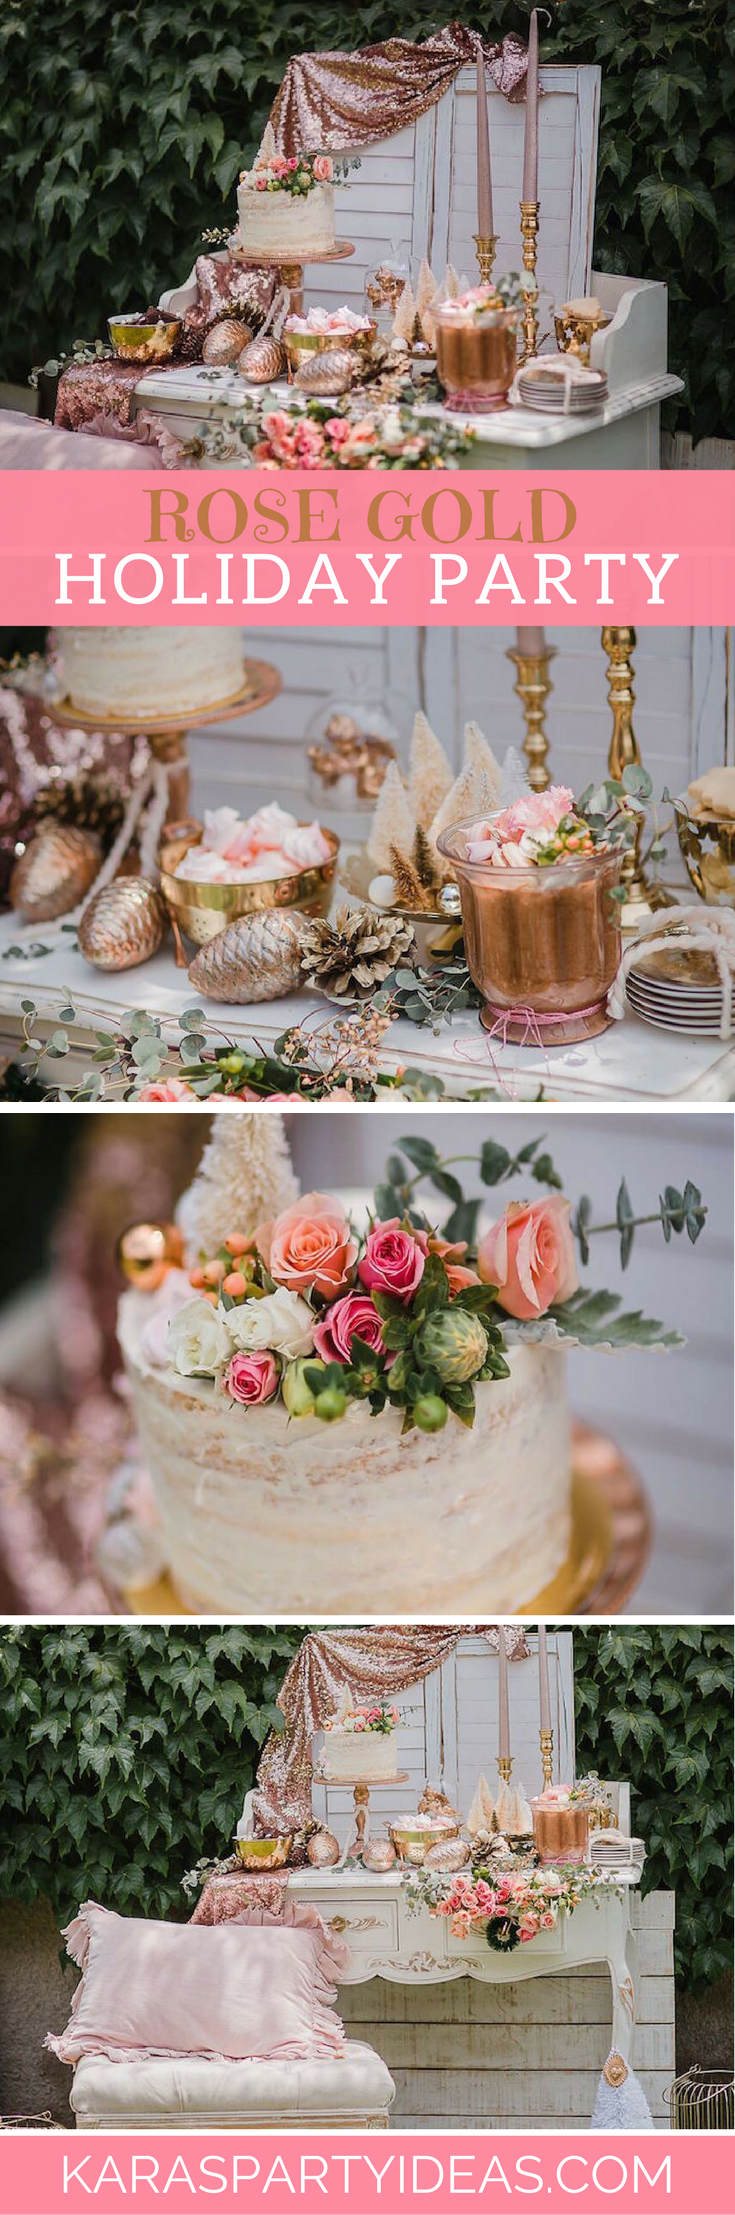 Rose Gold Holiday Party via Kara's Party Ideas - KarasPartyIdeas.com (1)